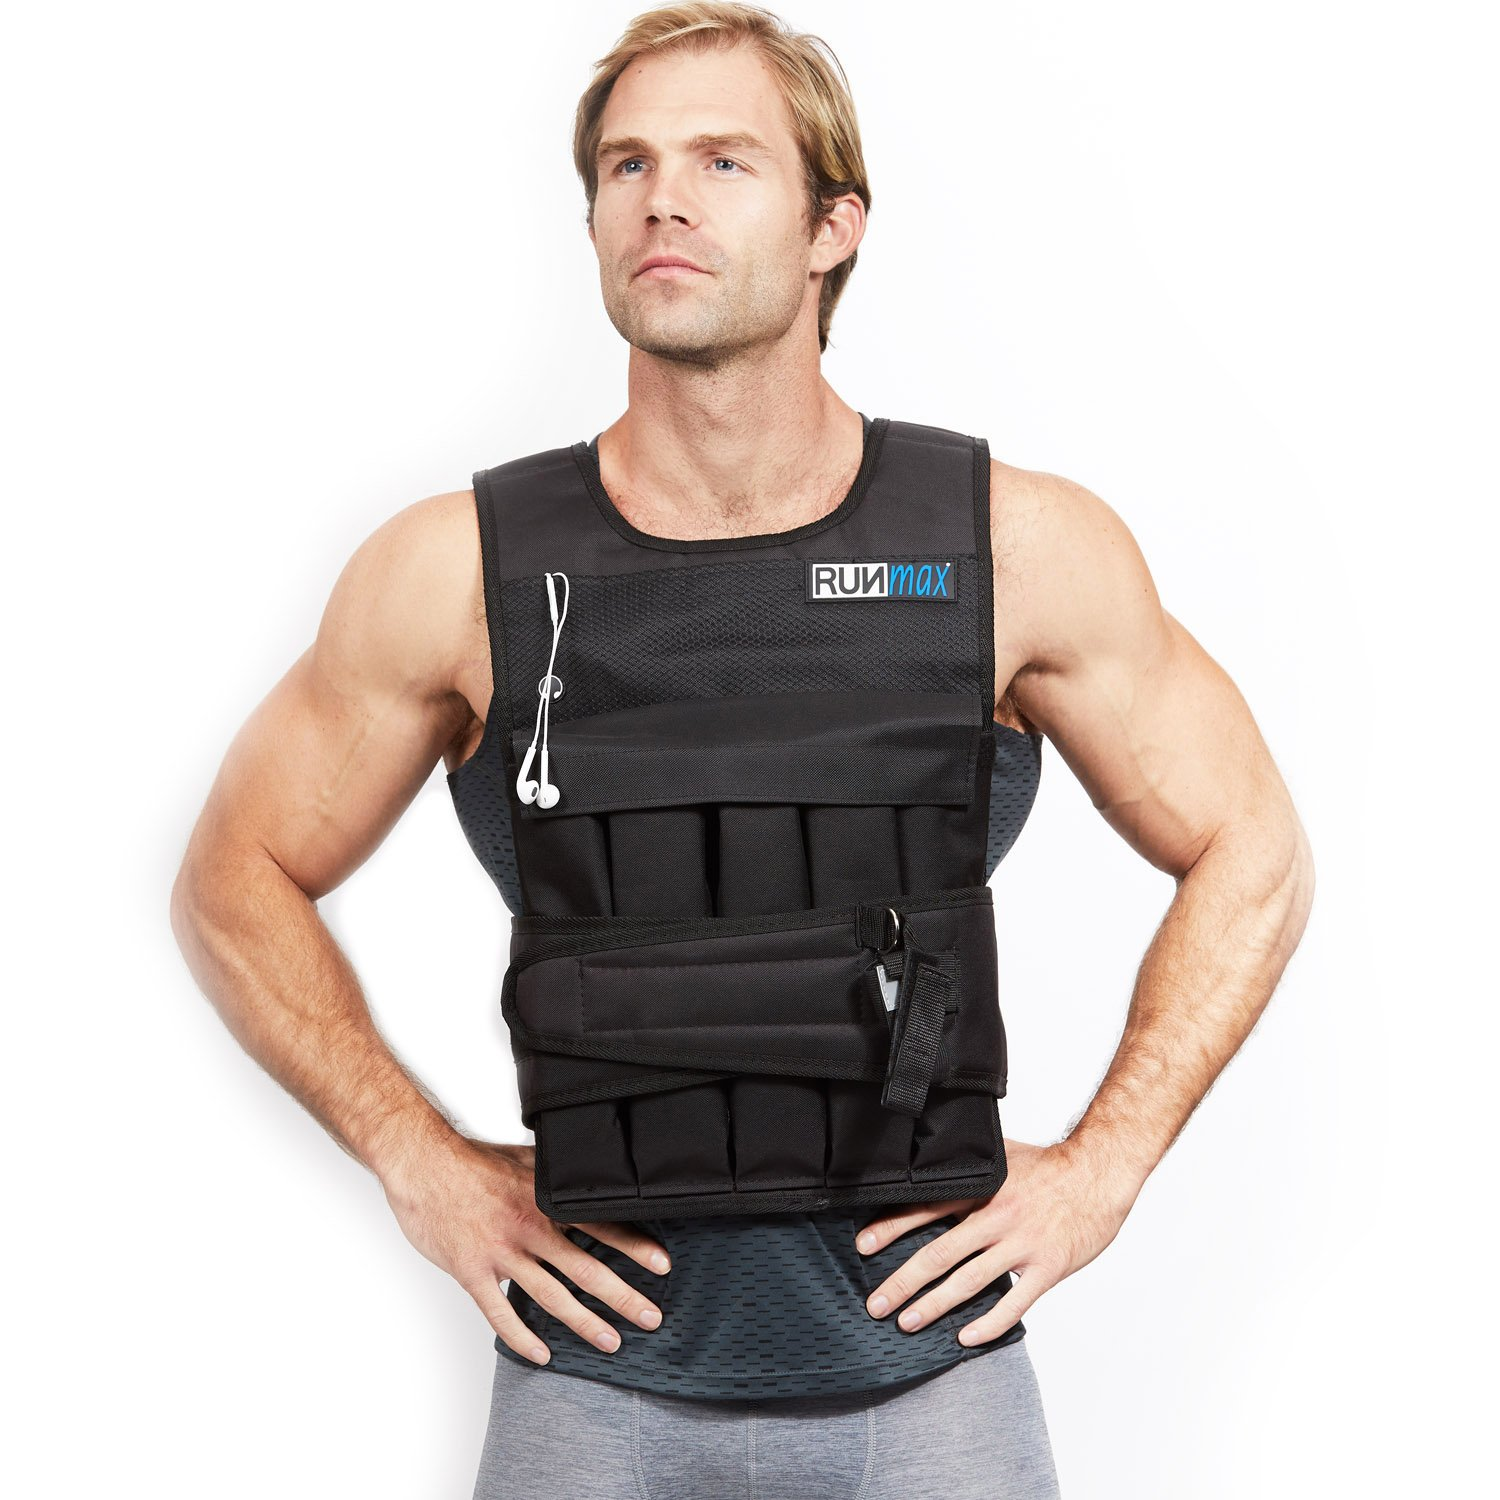 RUNFast Pro Weighted Vest 12lbs-60lbs (Without Shoulder Pads, 50 LB) by RUNmax (Image #1)